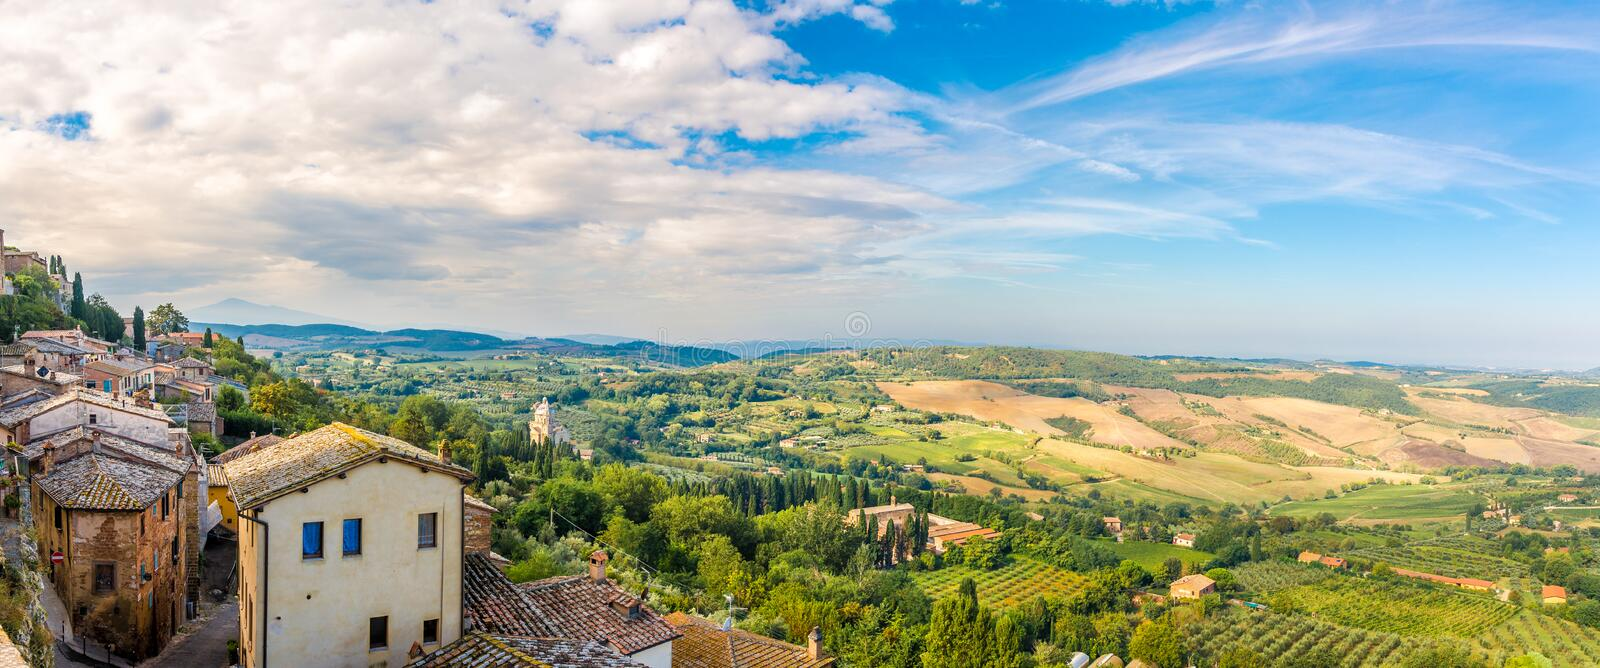 Panoramic view at the Tuscany nature from Montepulciano - Italy. Panoramic view at the Tuscany nature from Montepulciano, Italy royalty free stock photography